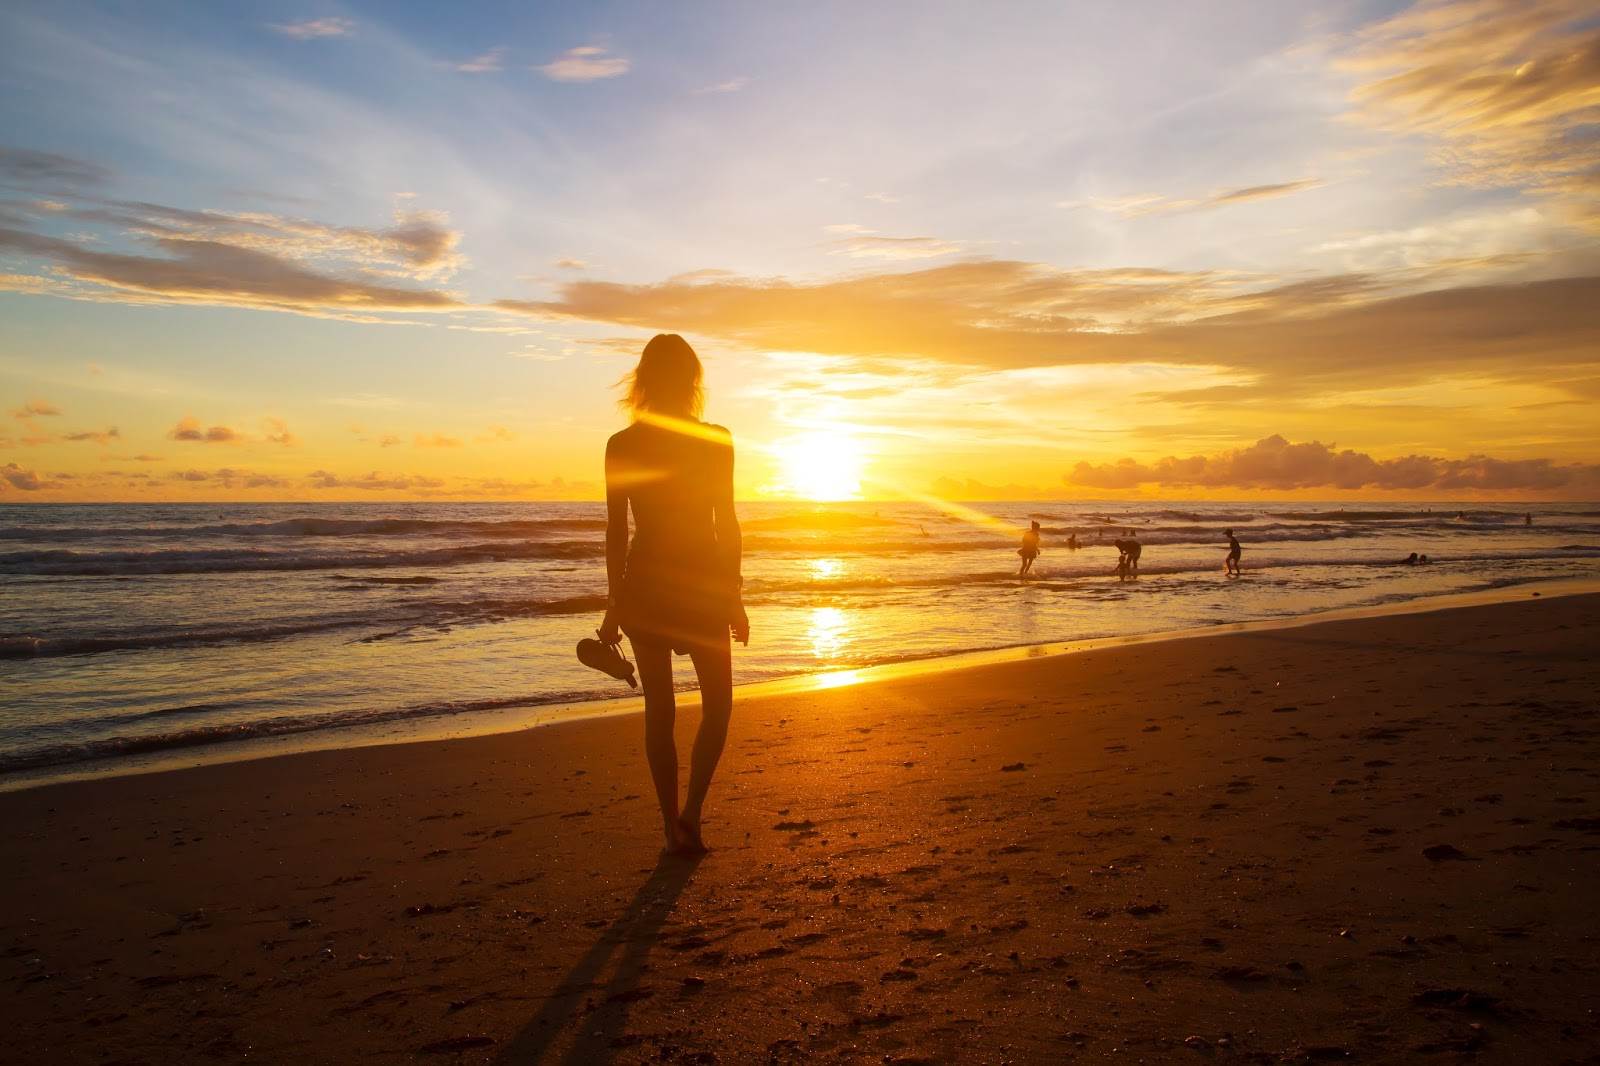 travel blogger, Alison Hutchinson, catching the sunset at Berawa Beach in Canggu, Bali